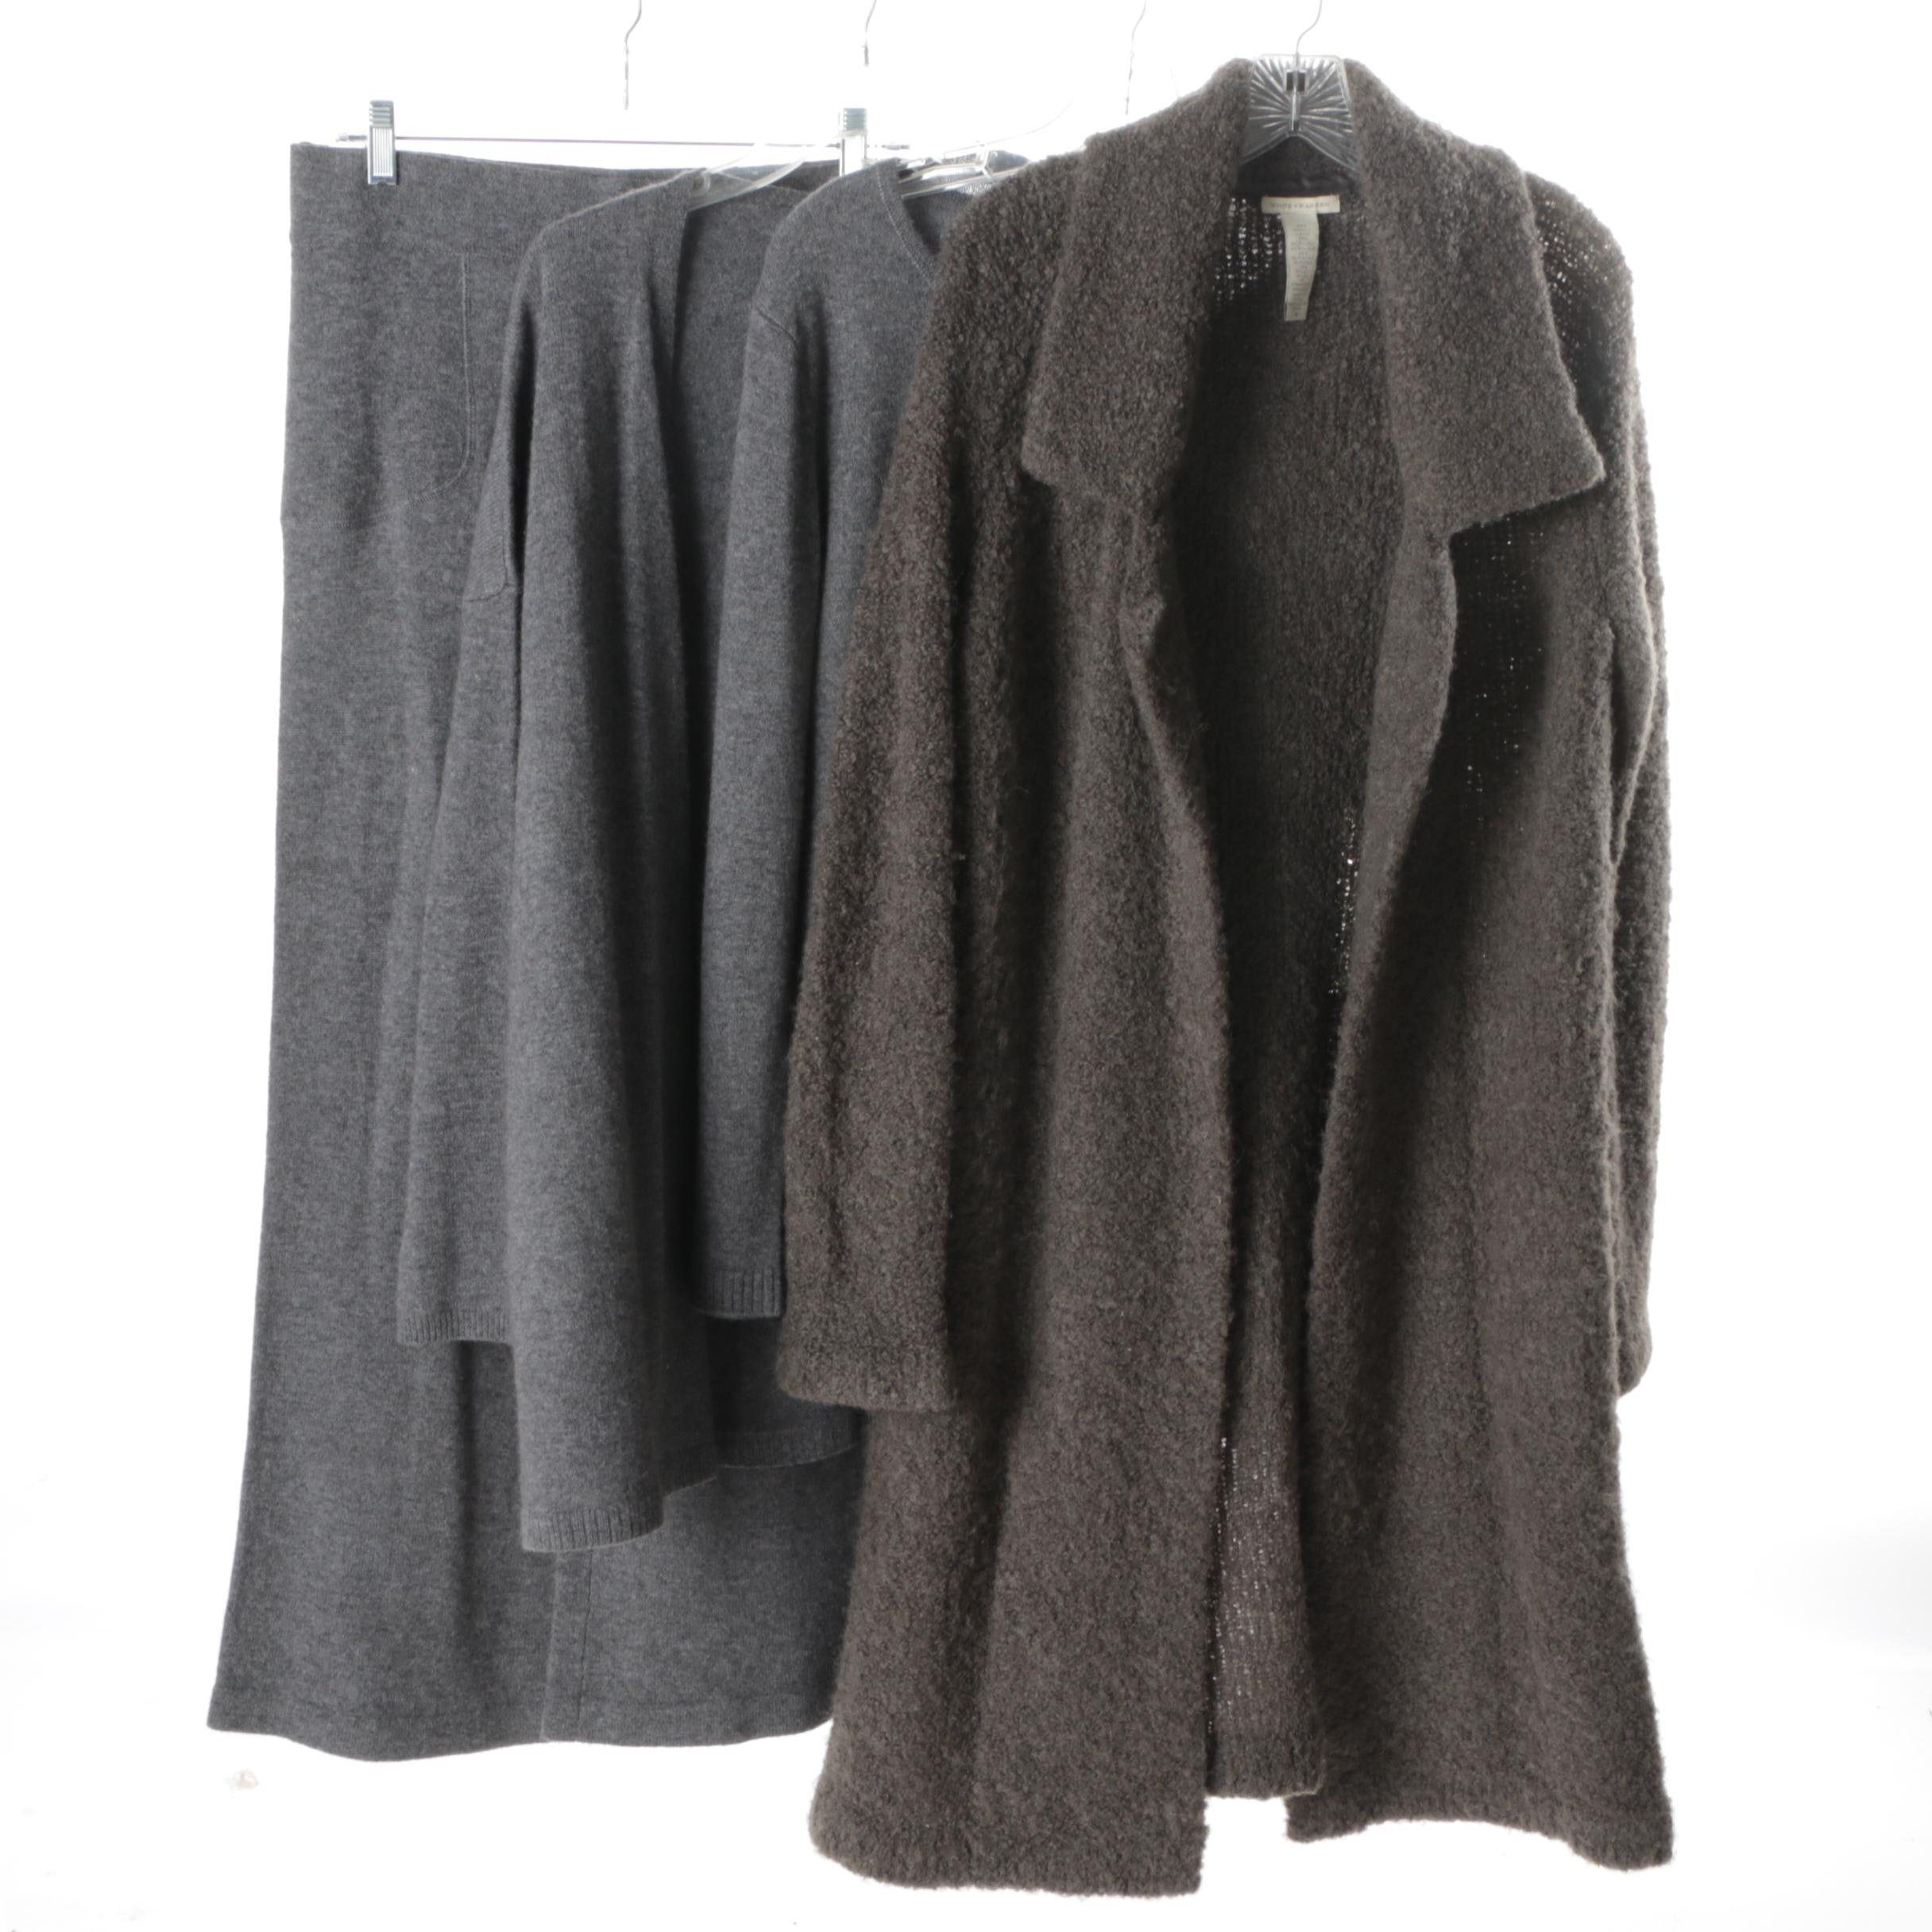 Women's Knit Clothing Including Rino Rossi